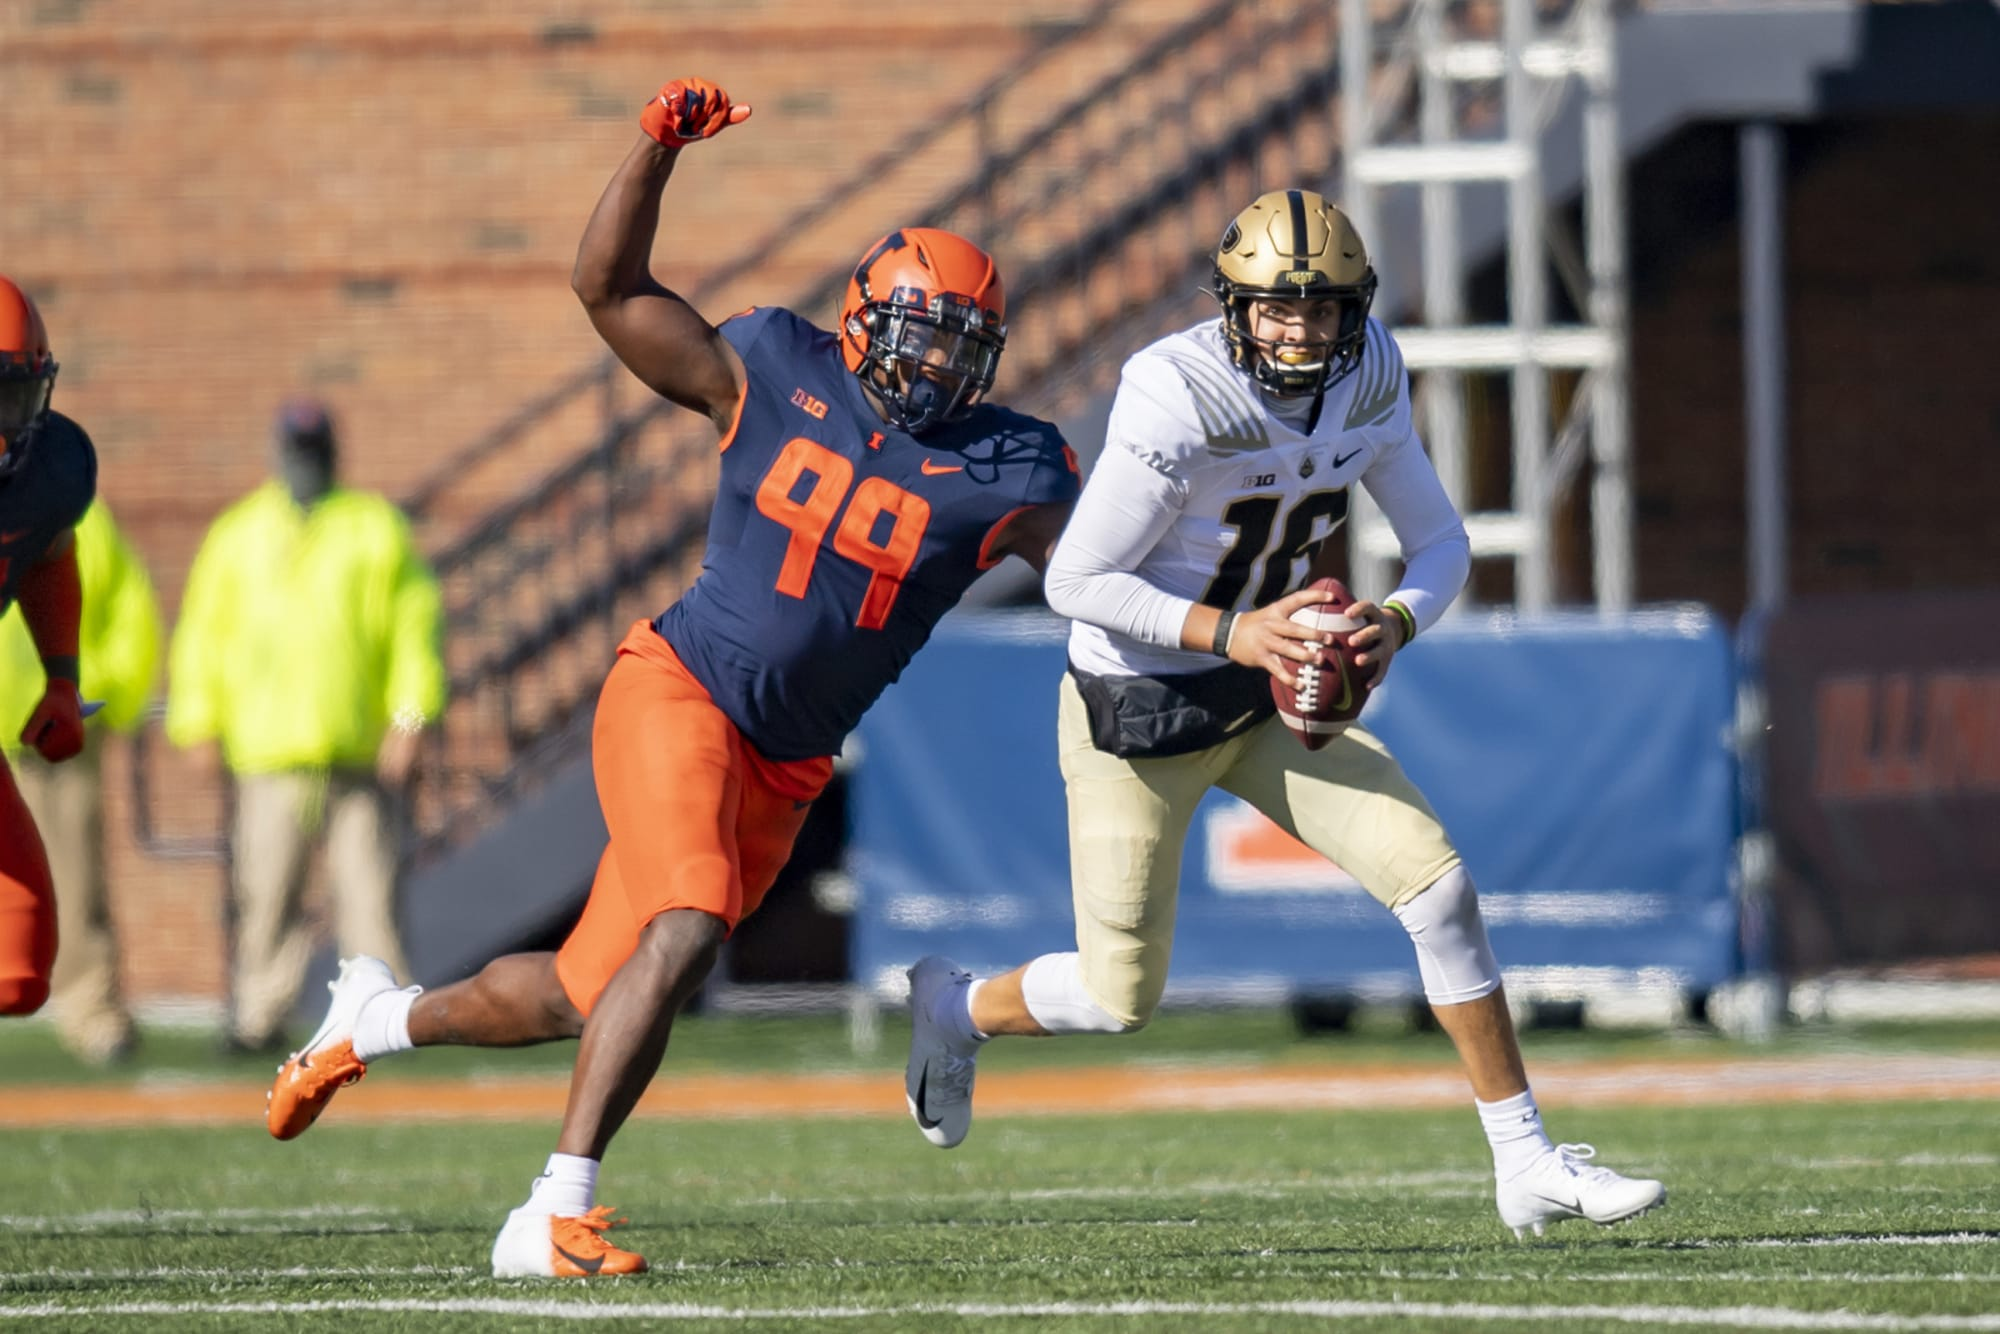 Illinois Football: Rutgers offense a promising matchup for Illini defense